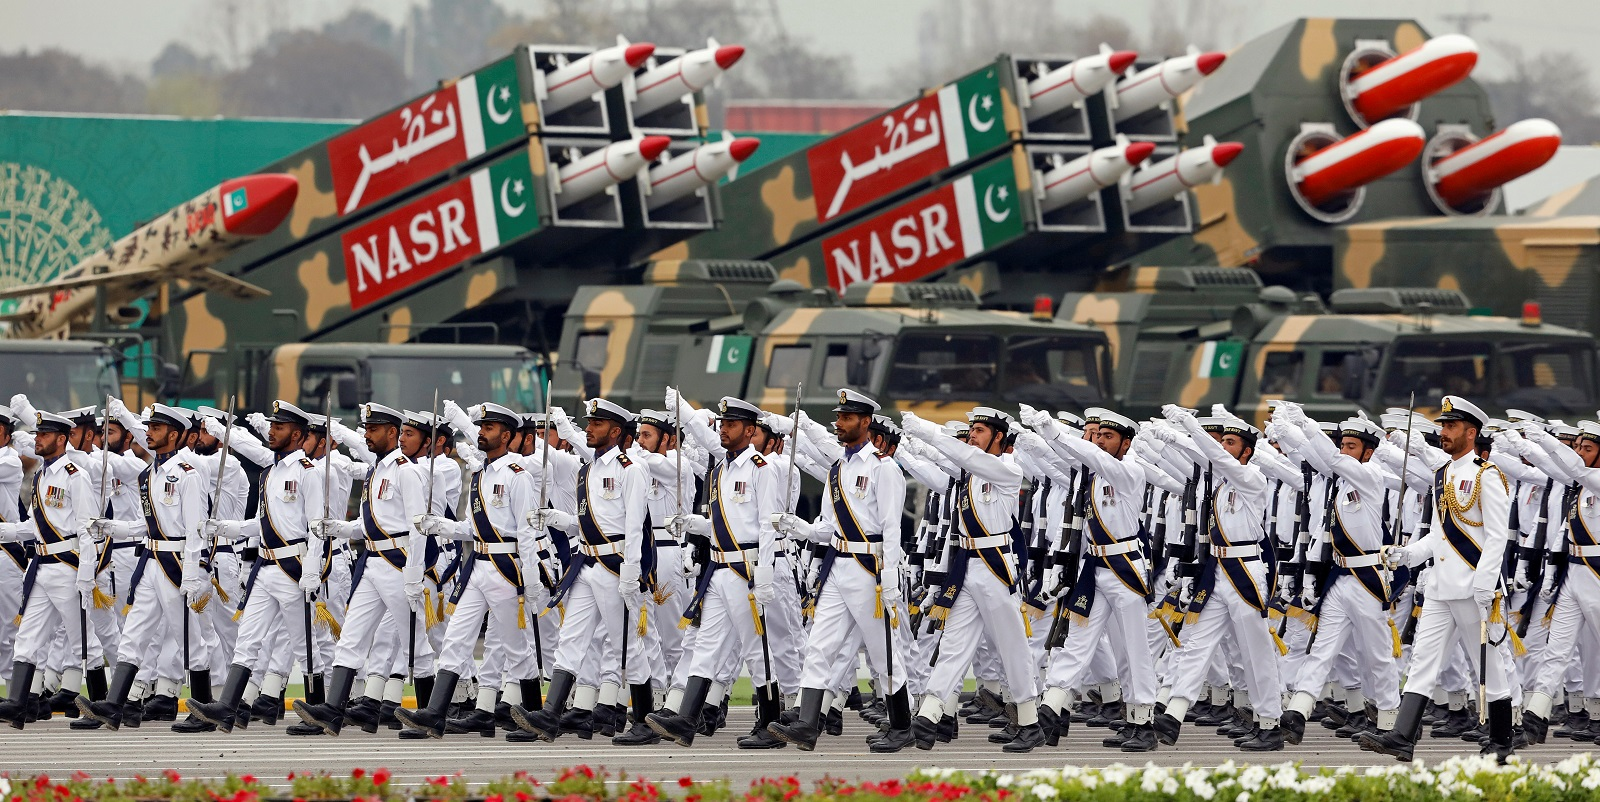 India vs. Pakistan: The 1 Thing That Could Spark a Nuclear War